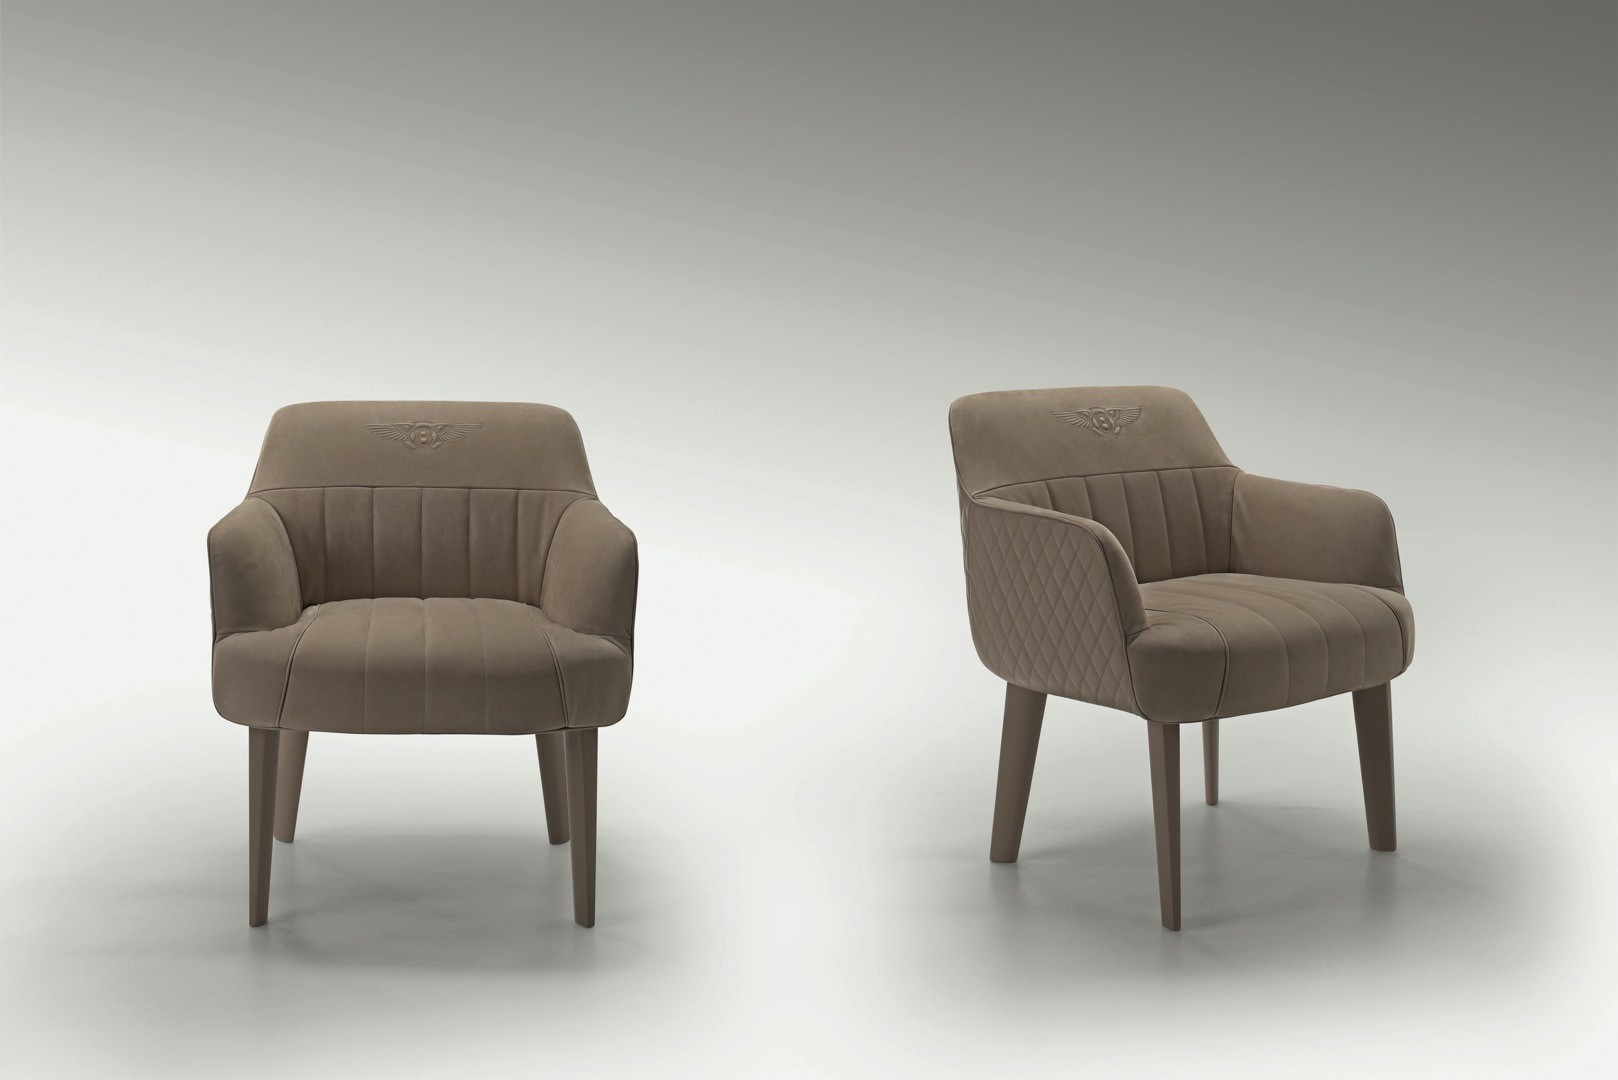 chair accessories design glass table with chairs bentley unveils new furniture and collection